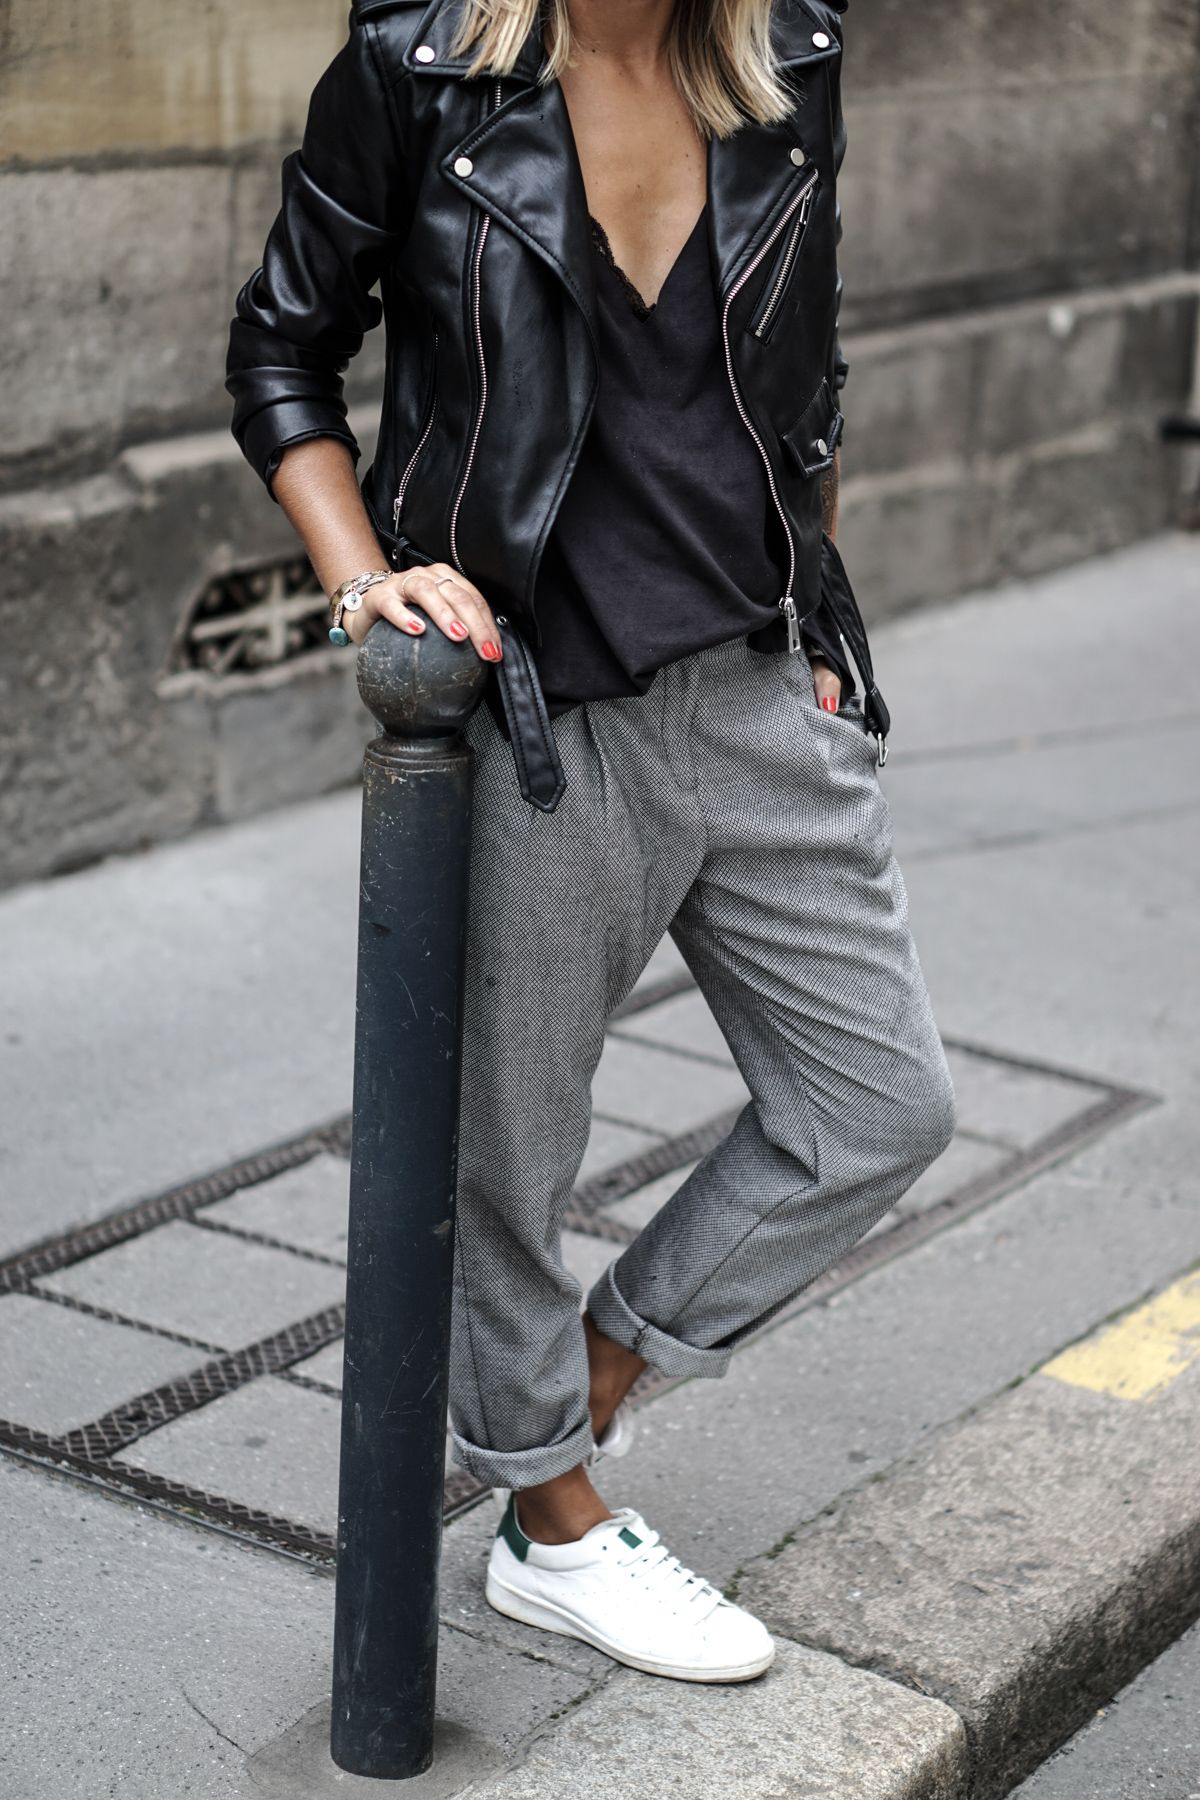 Forum on this topic: 19 Comfy Outfits With Leather Jogger Pants, 19-comfy-outfits-with-leather-jogger-pants/